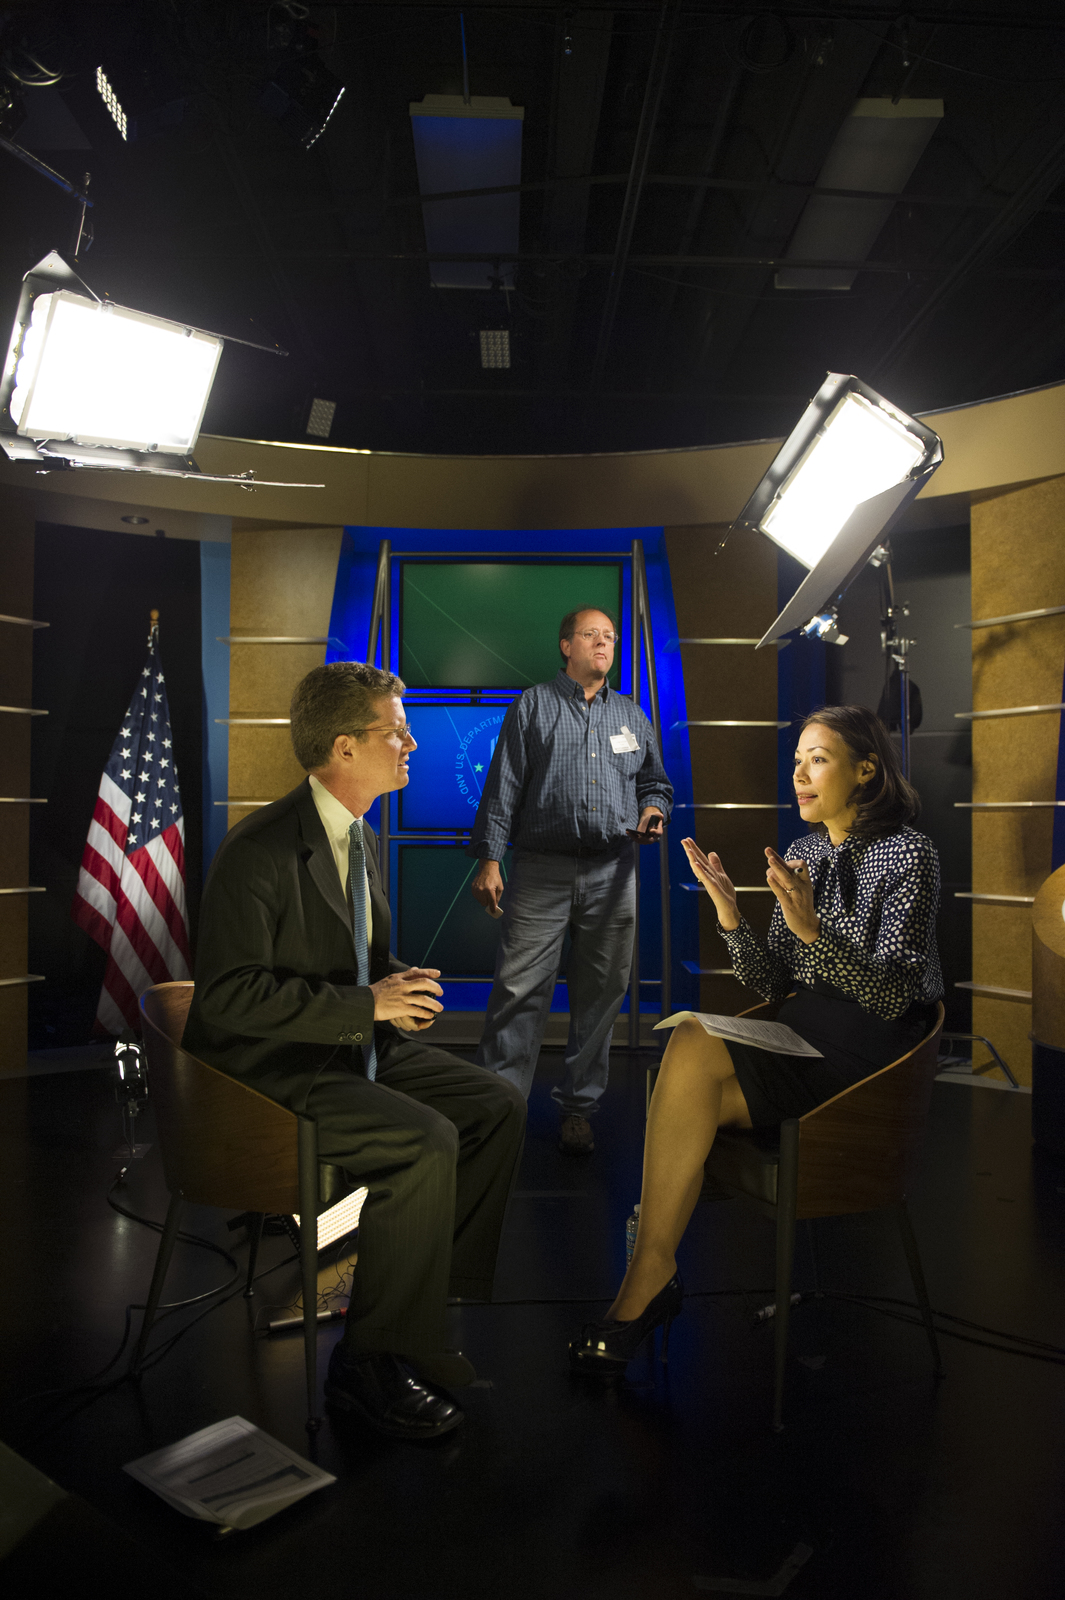 [Secretary Shaun Donovan giving] interview, [tour of HUD headquarters, to NBC's] Anne Curry